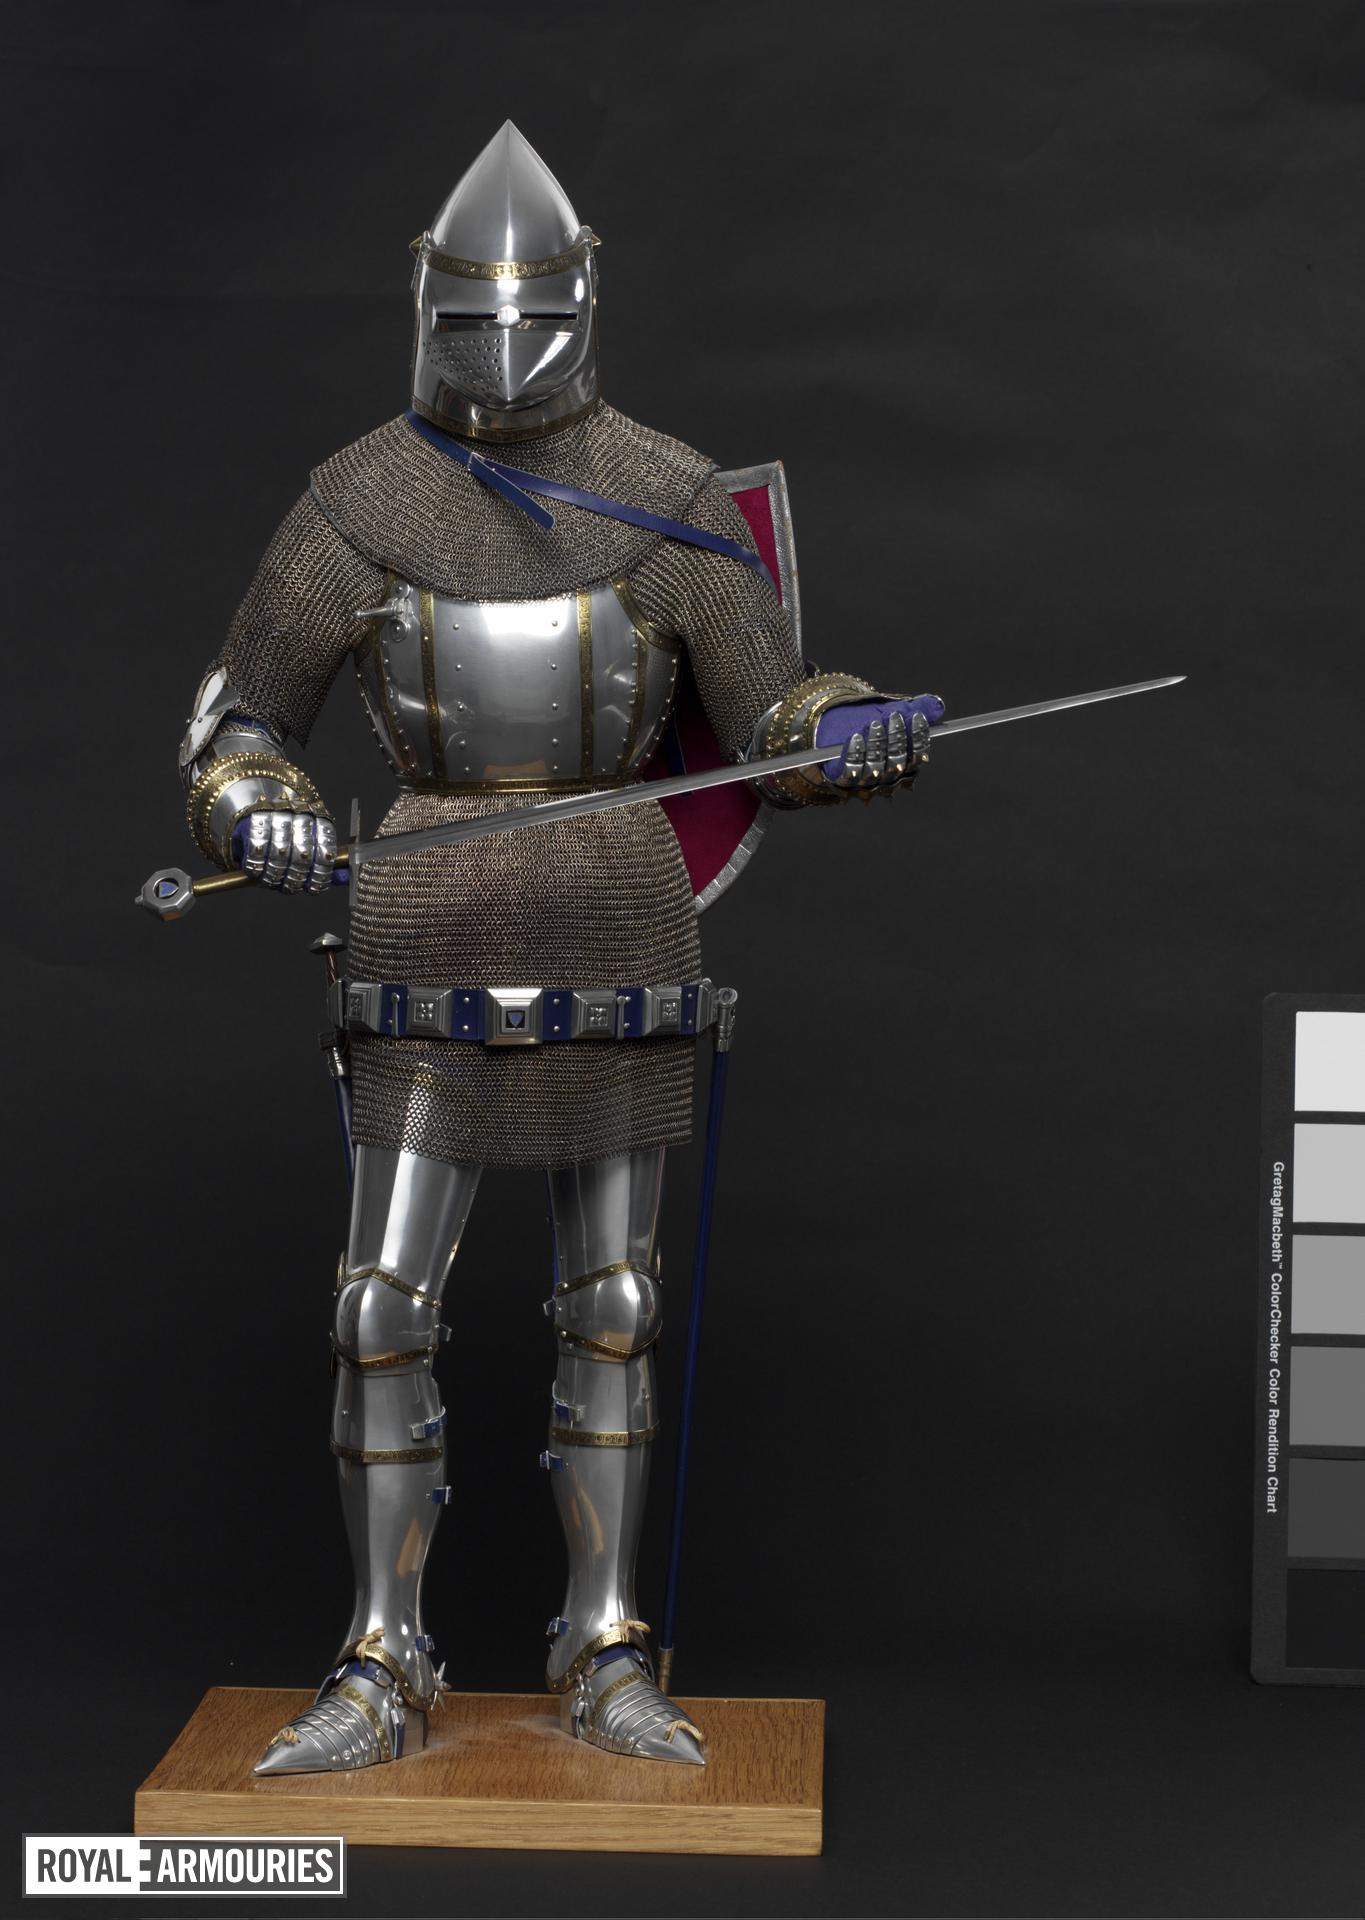 Model armour - Model Armour Model of an Italian armour of the late 14th century, by Peter Wroe